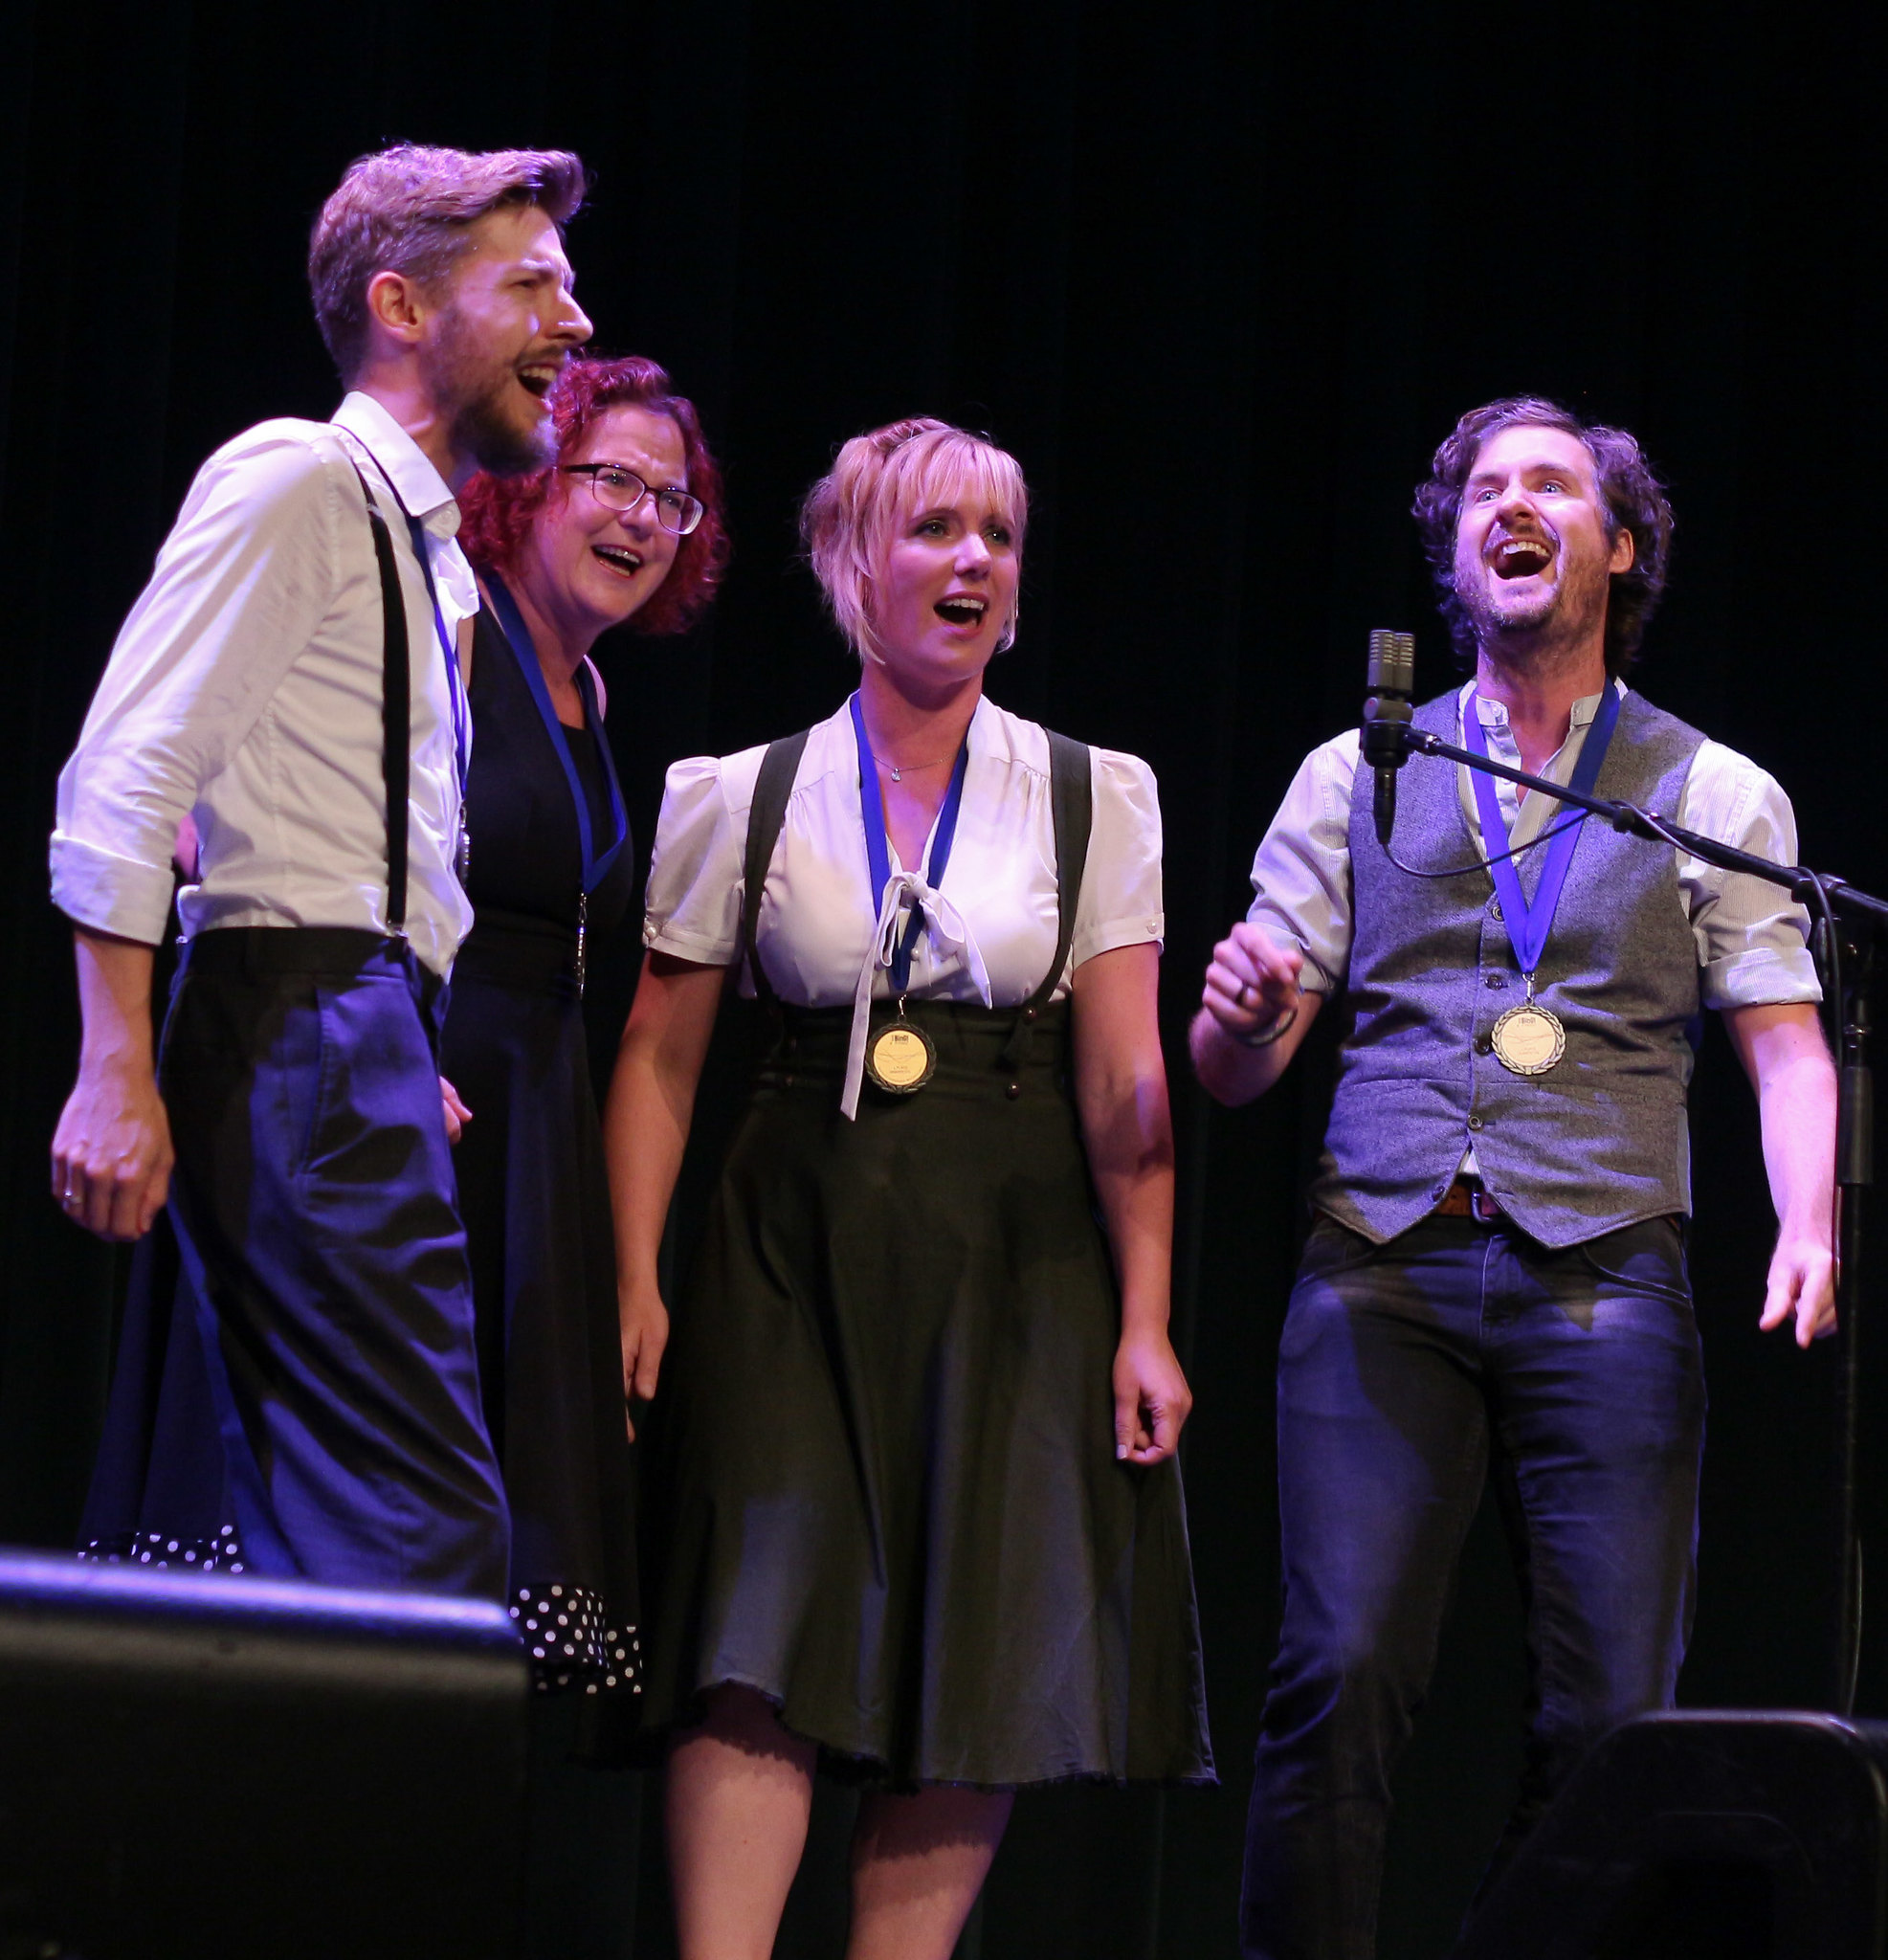 A Mixed Quartet Performs At Harmony University